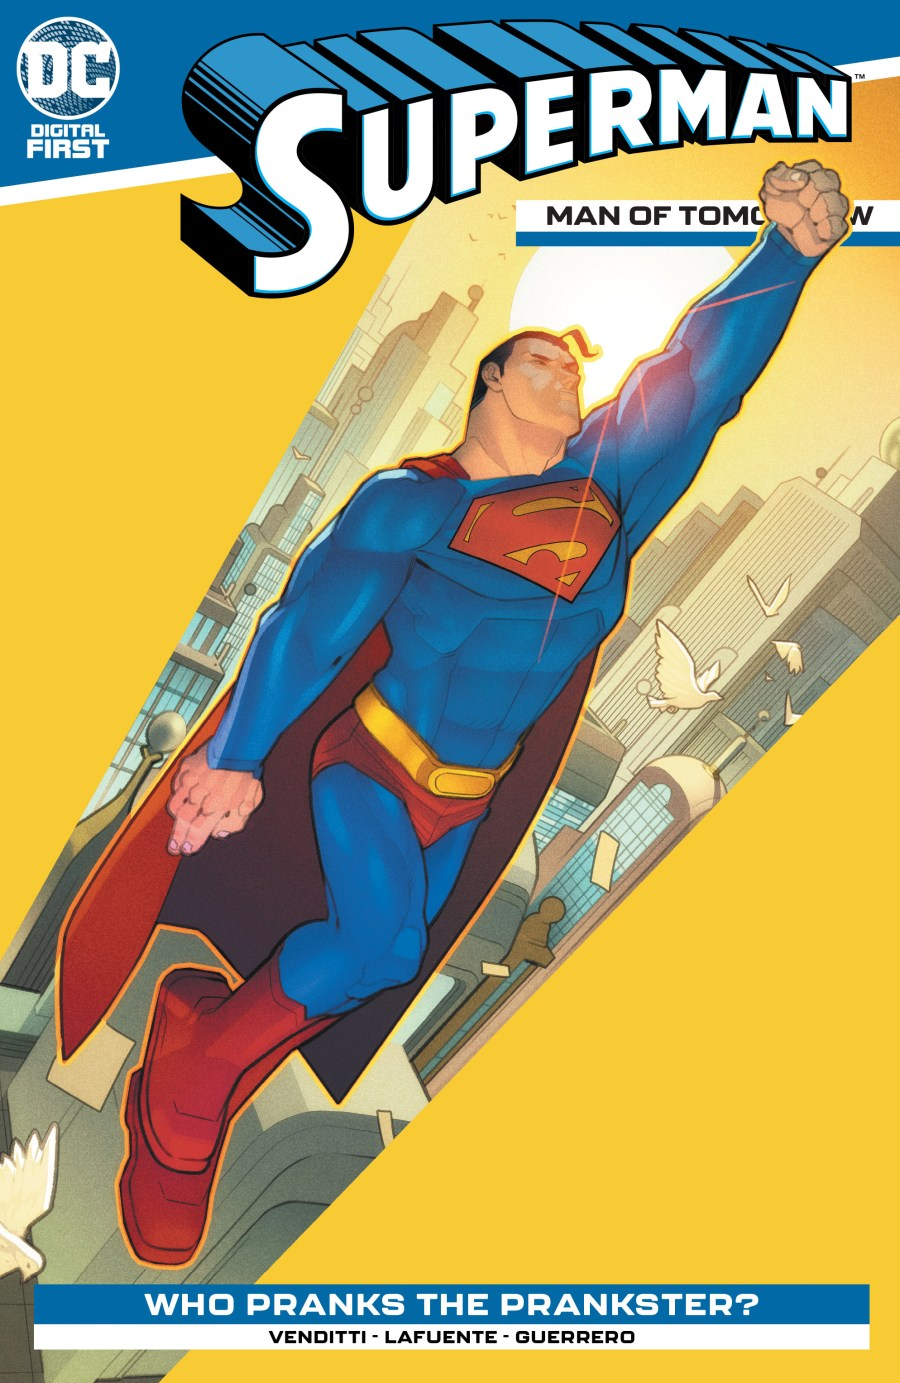 Superman: Man of Tomorrow #13 review